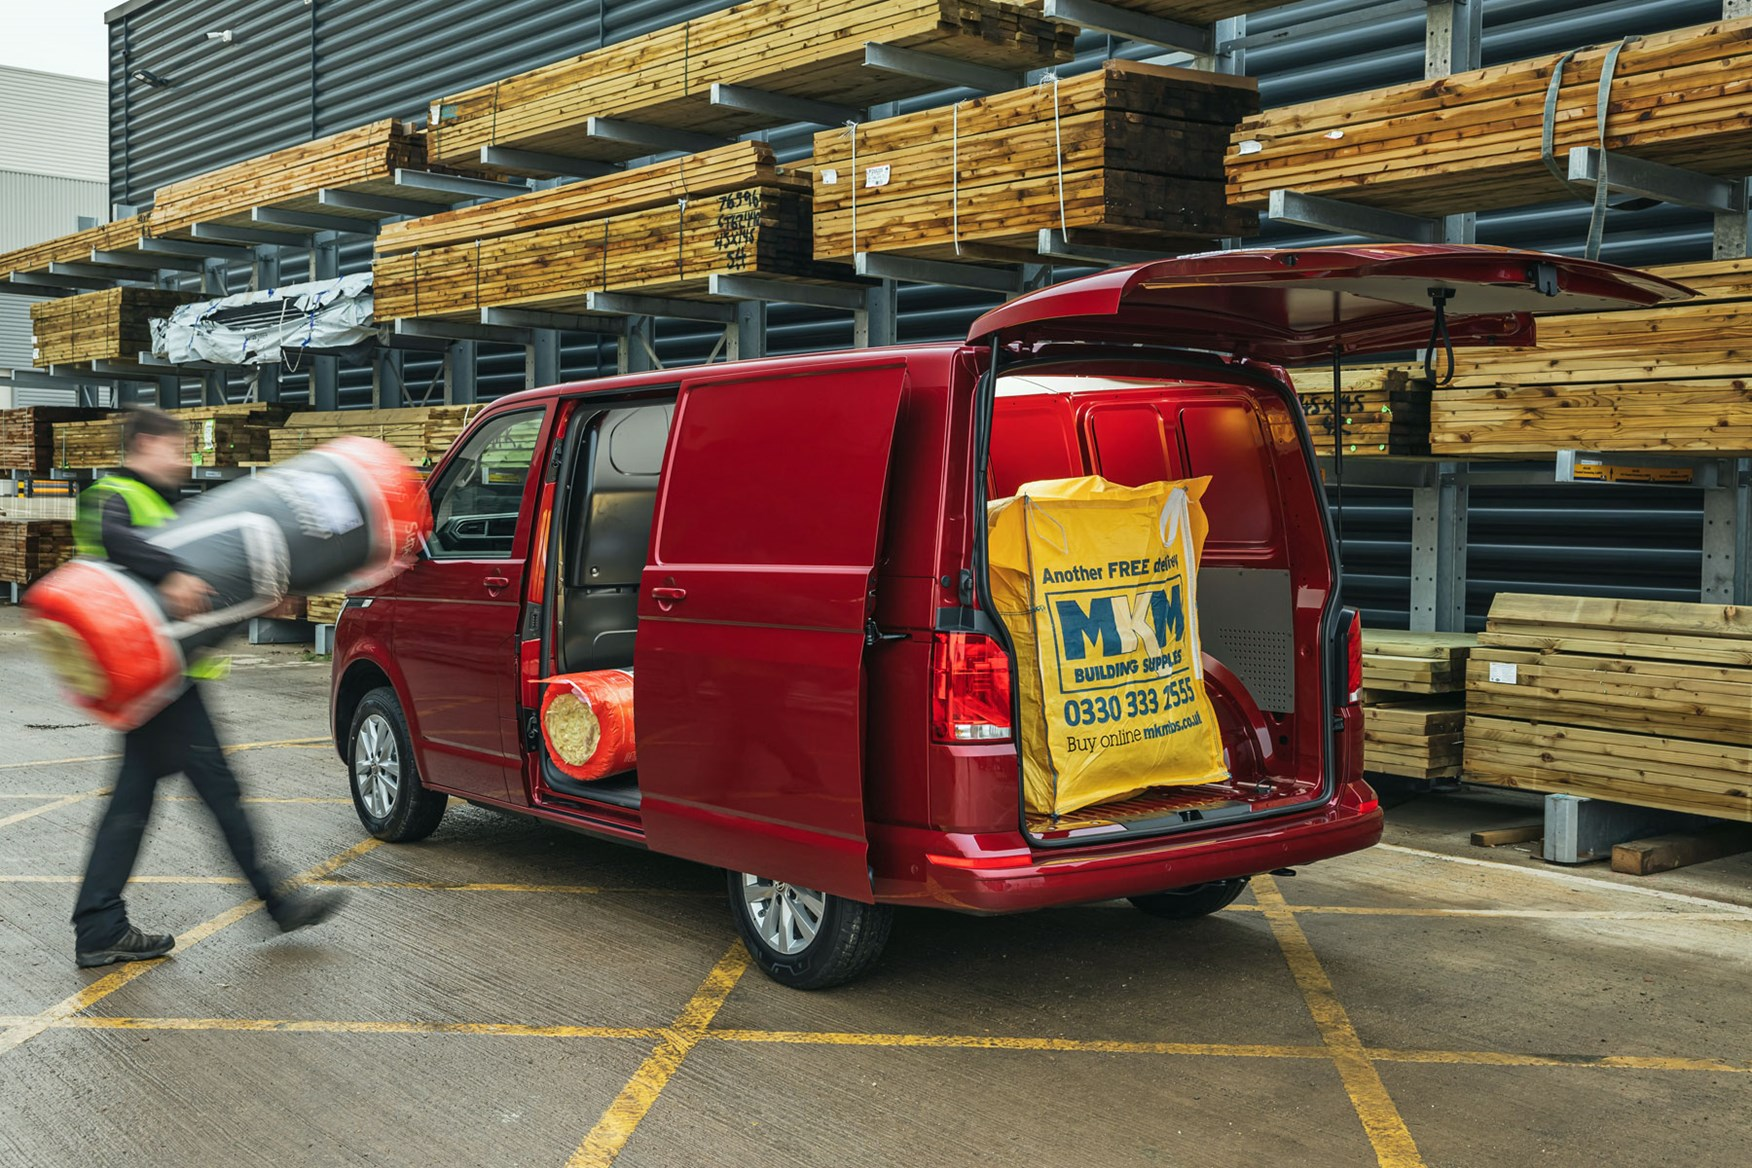 Volkswagen Transporter review, T6.1, 2020, red, rear view, van being loaded